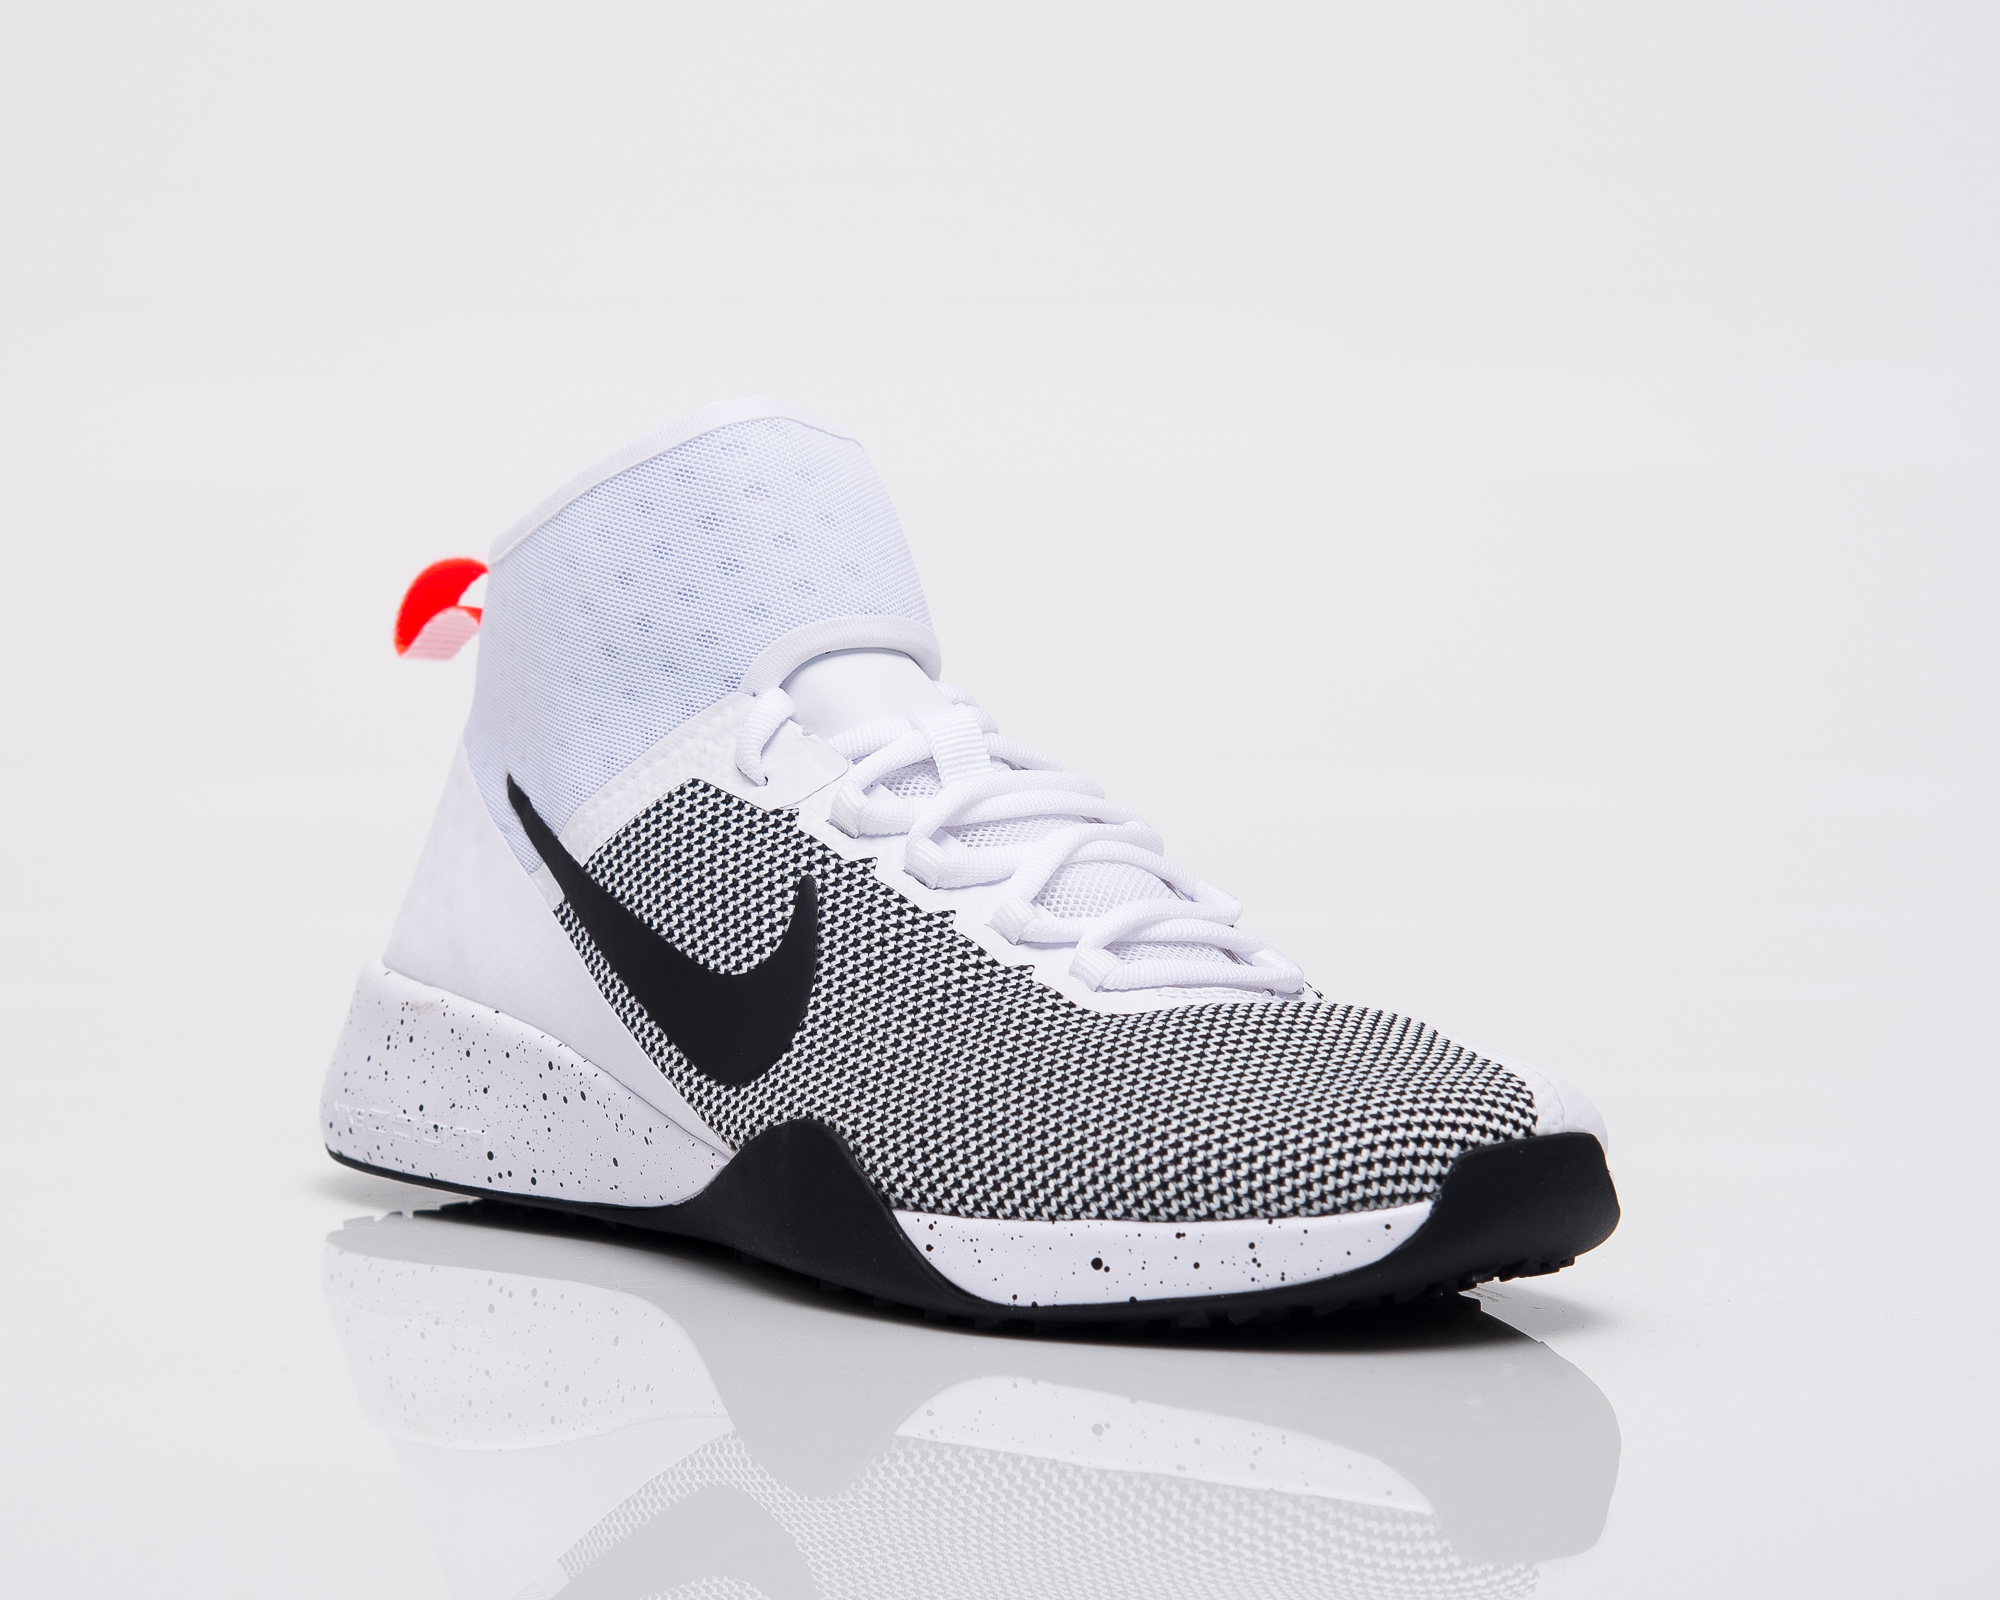 size 40 57f4d 62494 Nike Wmns Air Zoom Strong 2 - Shoes Training - Sporting goods | sil.lt